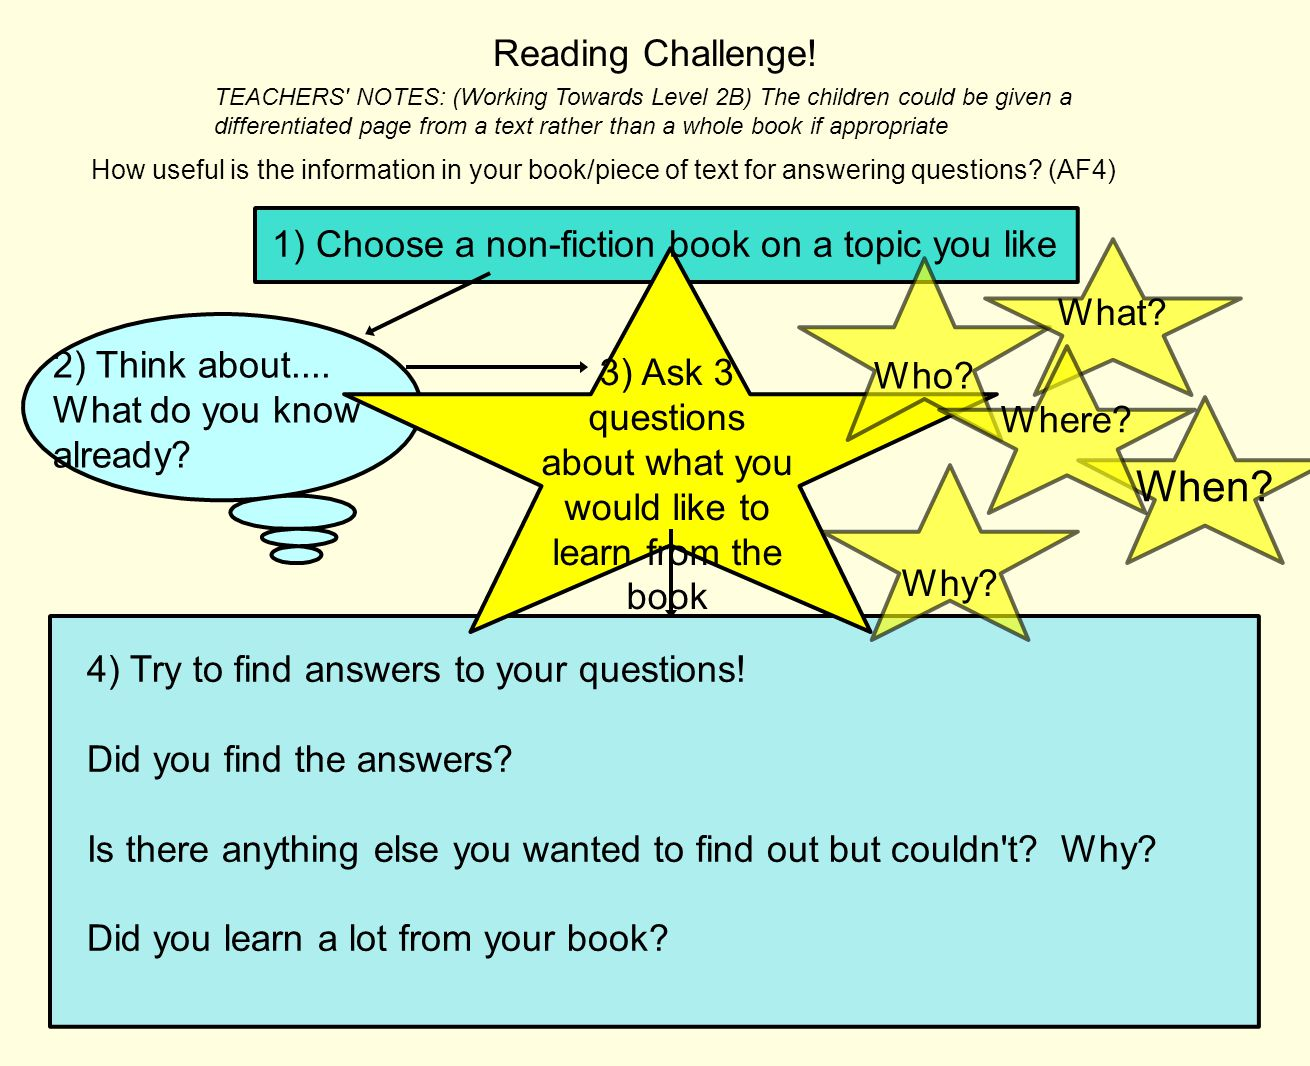 3) Ask 3 questions about what you would like to learn from the book